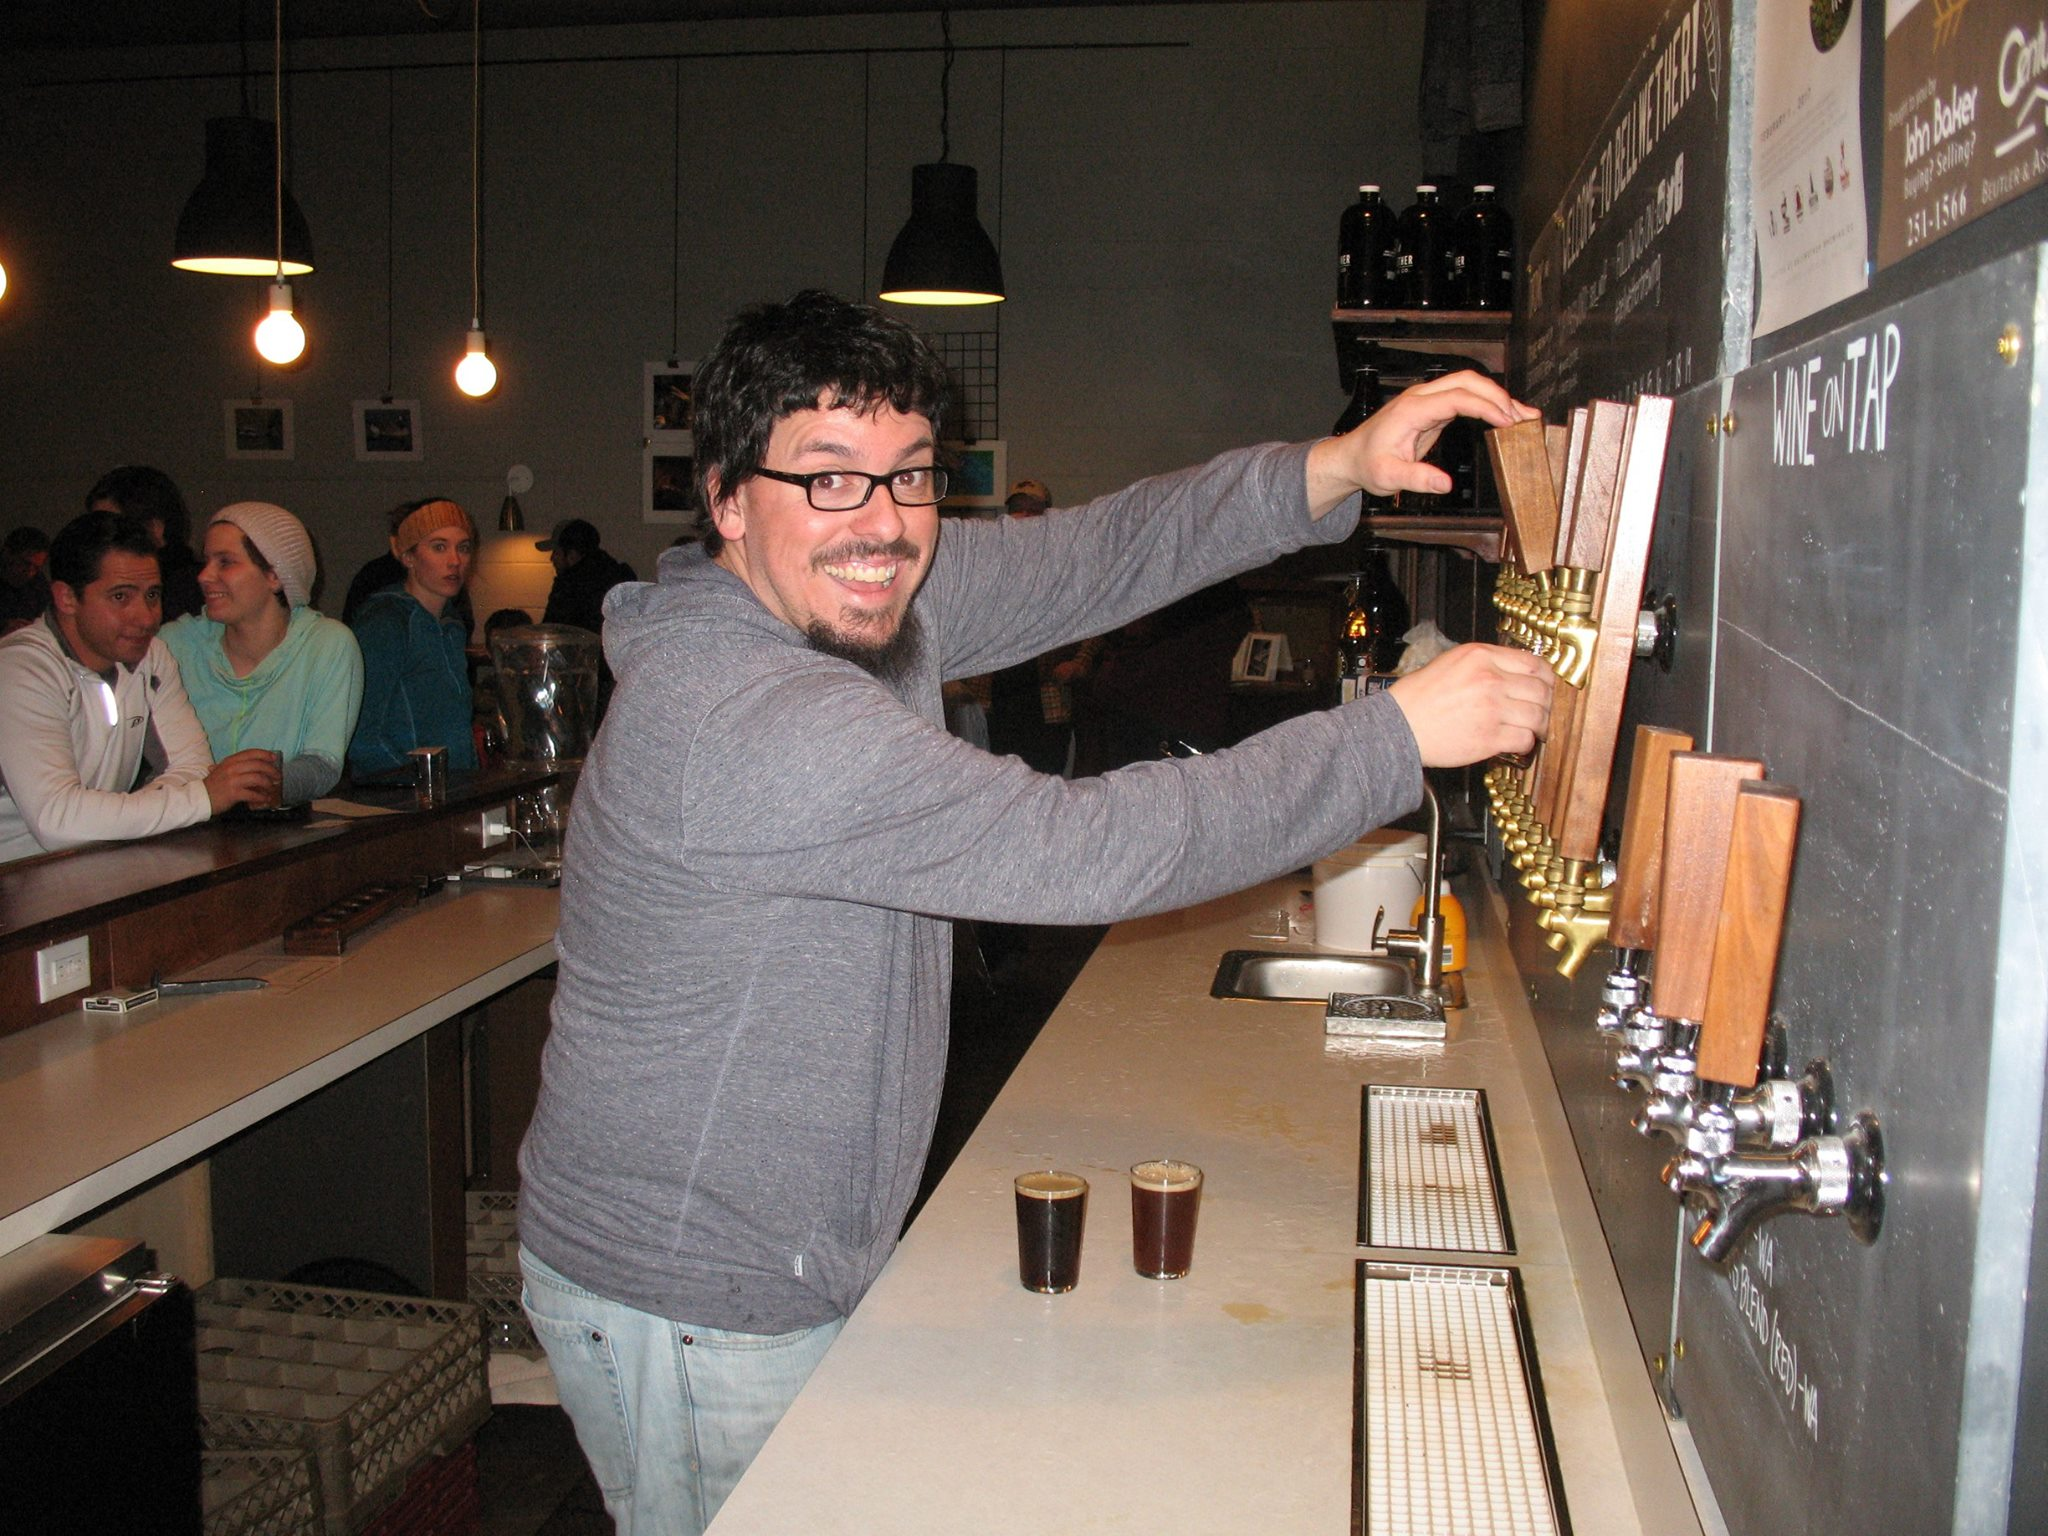 The brewer (Tom of Bellwether Brewery)